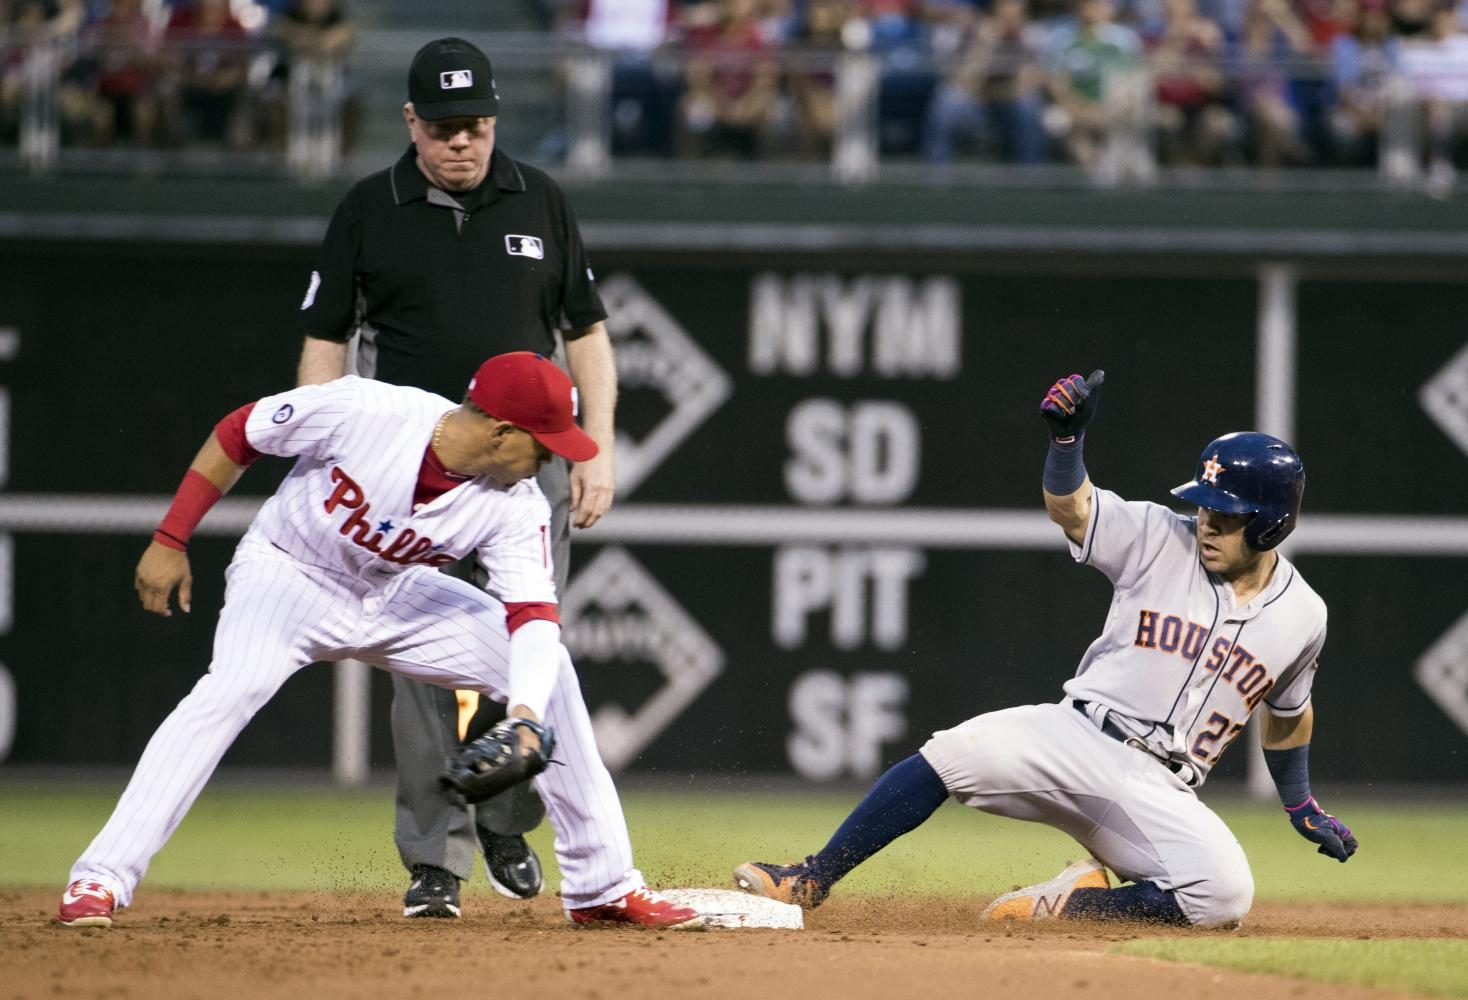 Jose+Altuve+slides+into+second+bases+on+one+of+his+two+doubles+of+the+night.%28AP+Photo%2FChris+Szagola%29